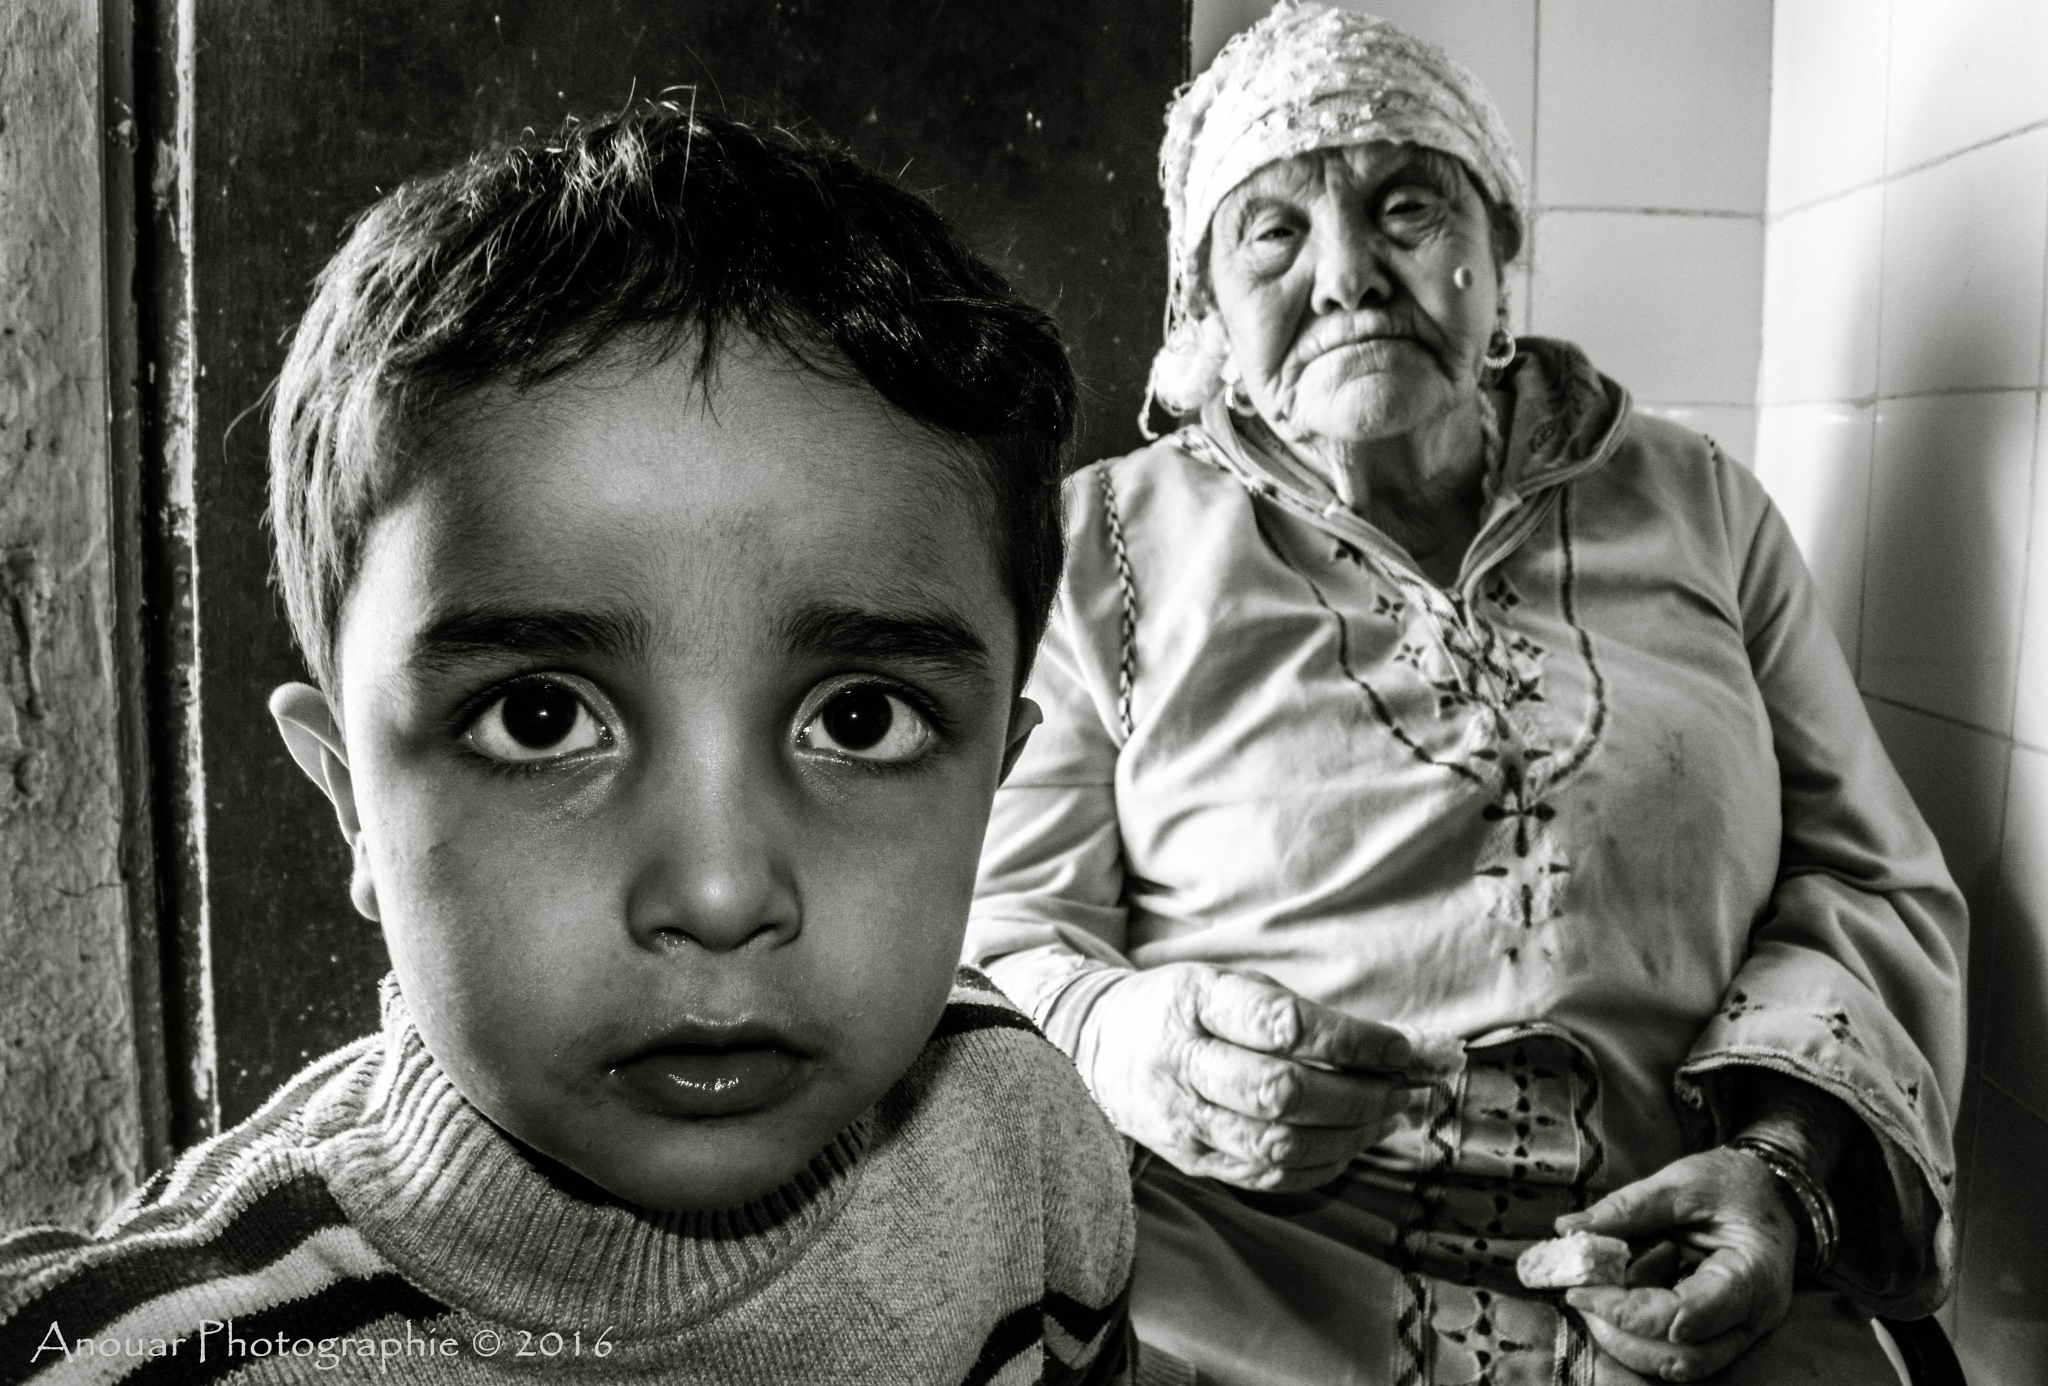 2 GENERATION by Anouar Sassi